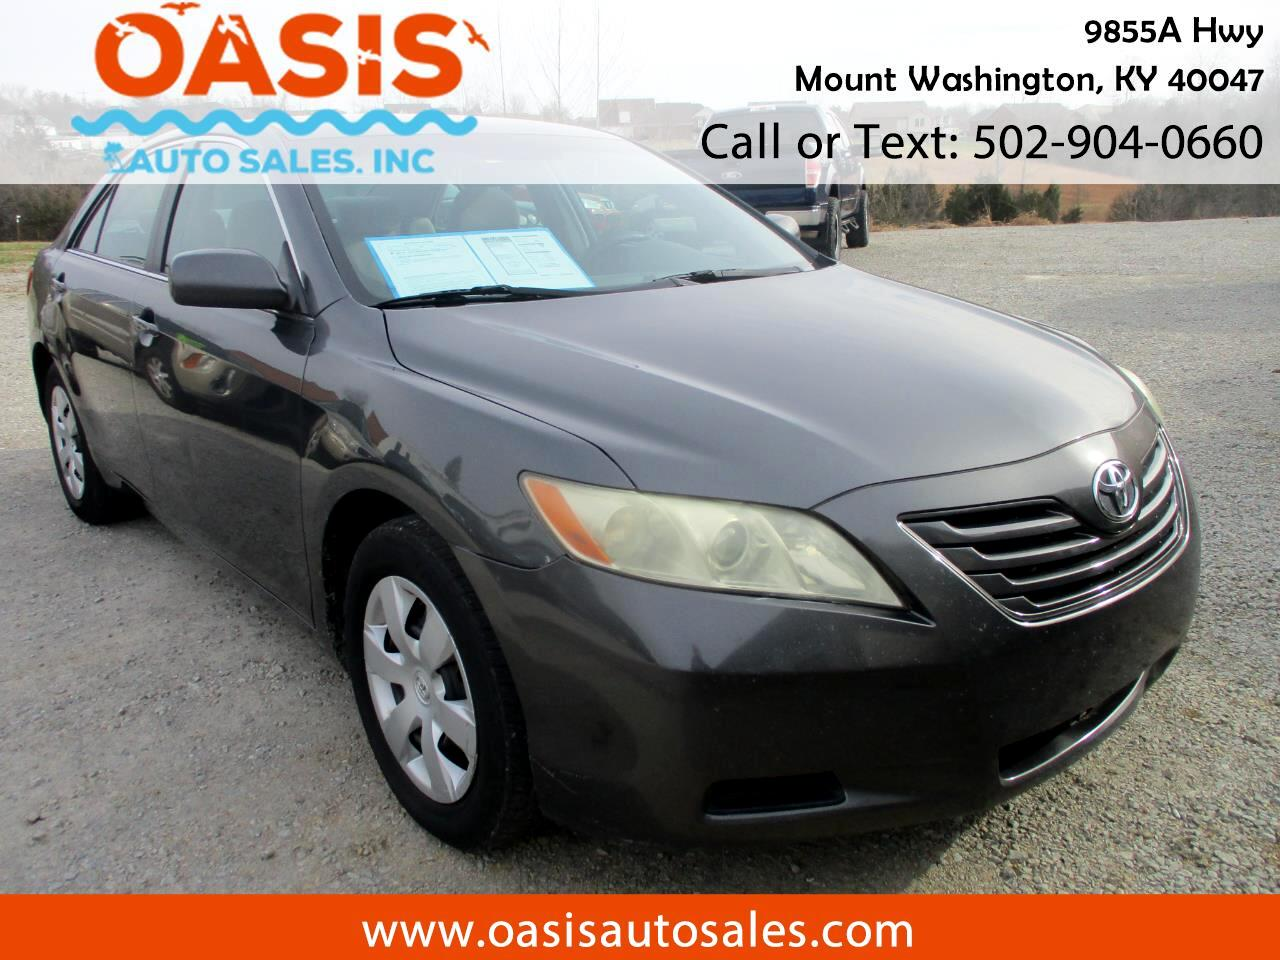 2007 Toyota Camry 4dr Sdn I4 Auto LE (Natl)